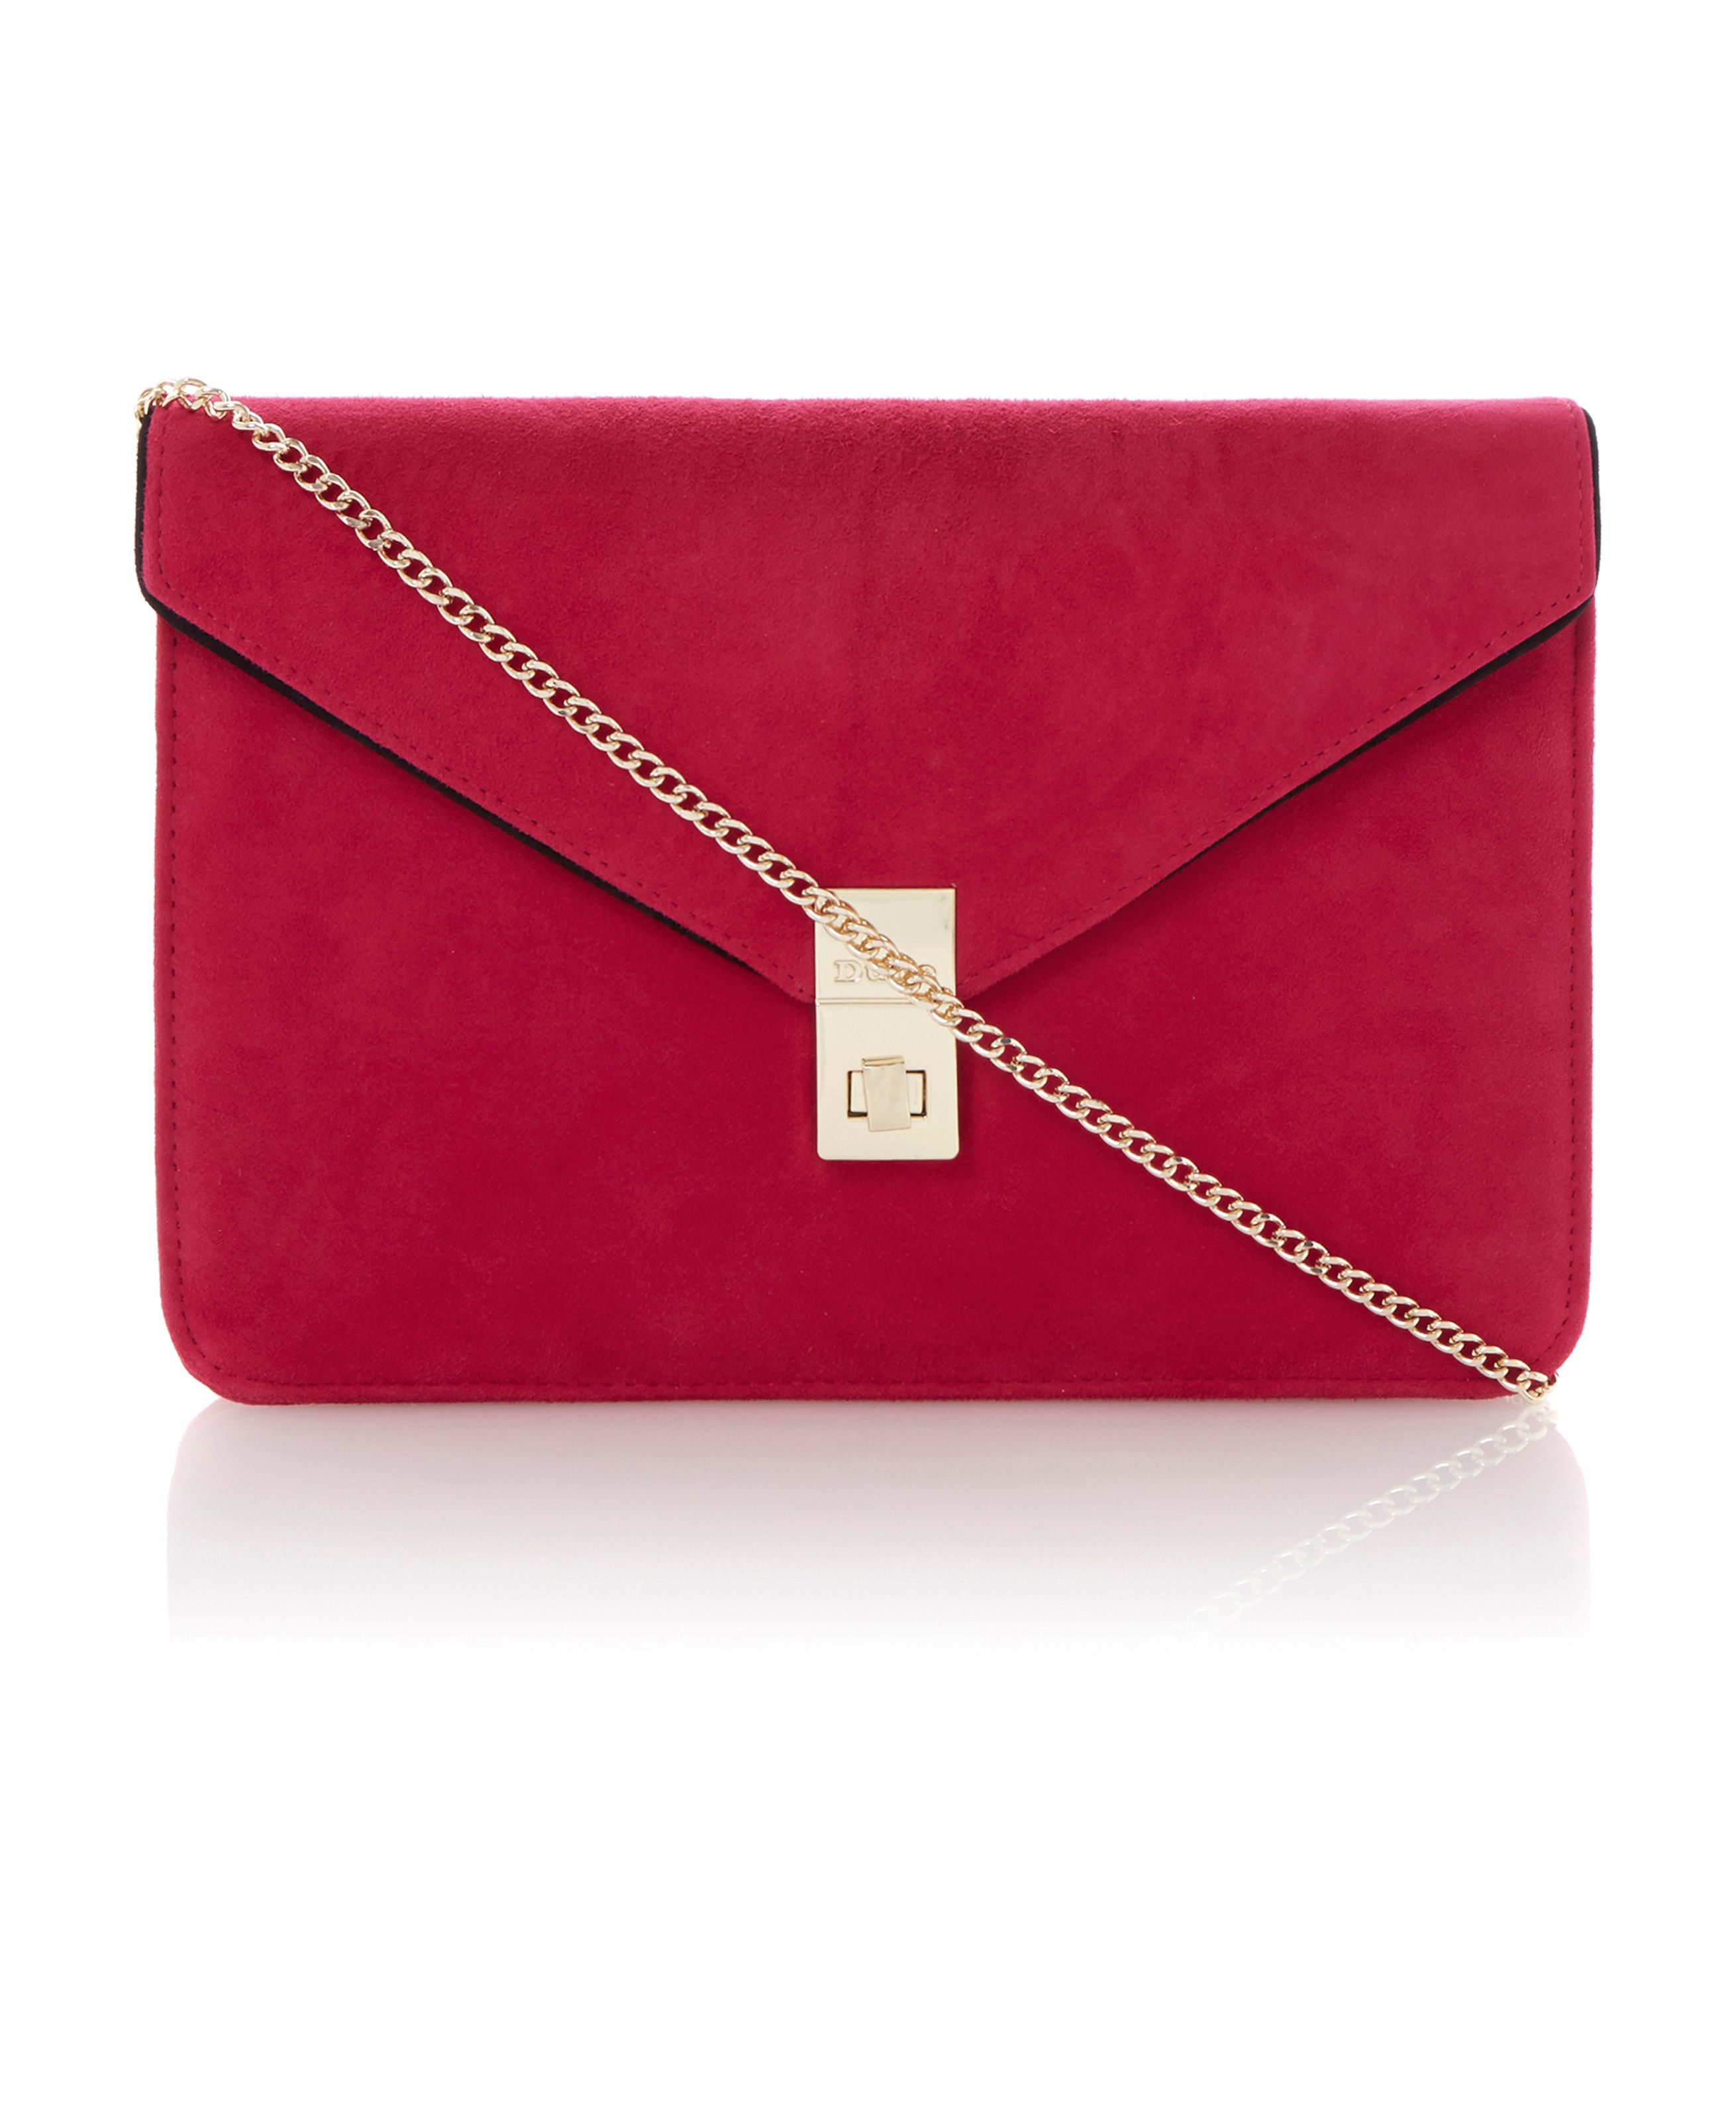 Blockies oversized suede envelope clutch bag